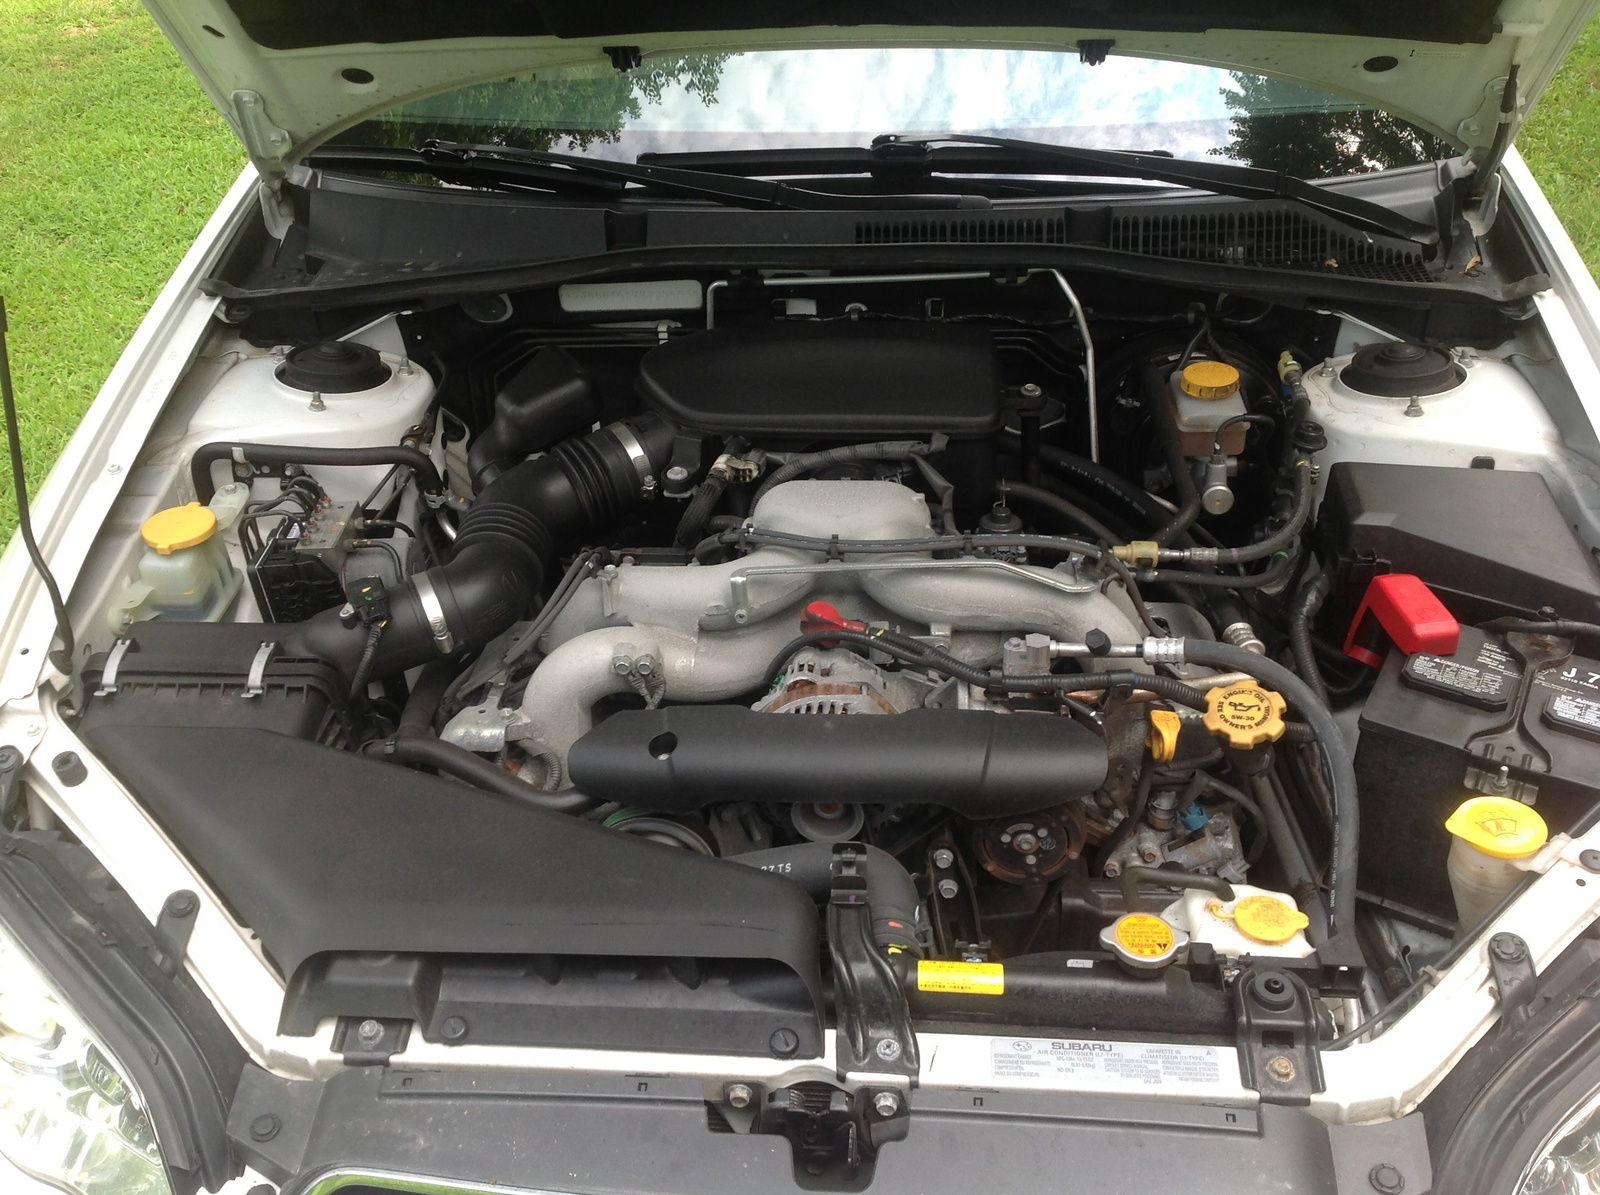 2009 Subaru Legacy 2.5 i Special Edition picture, engine